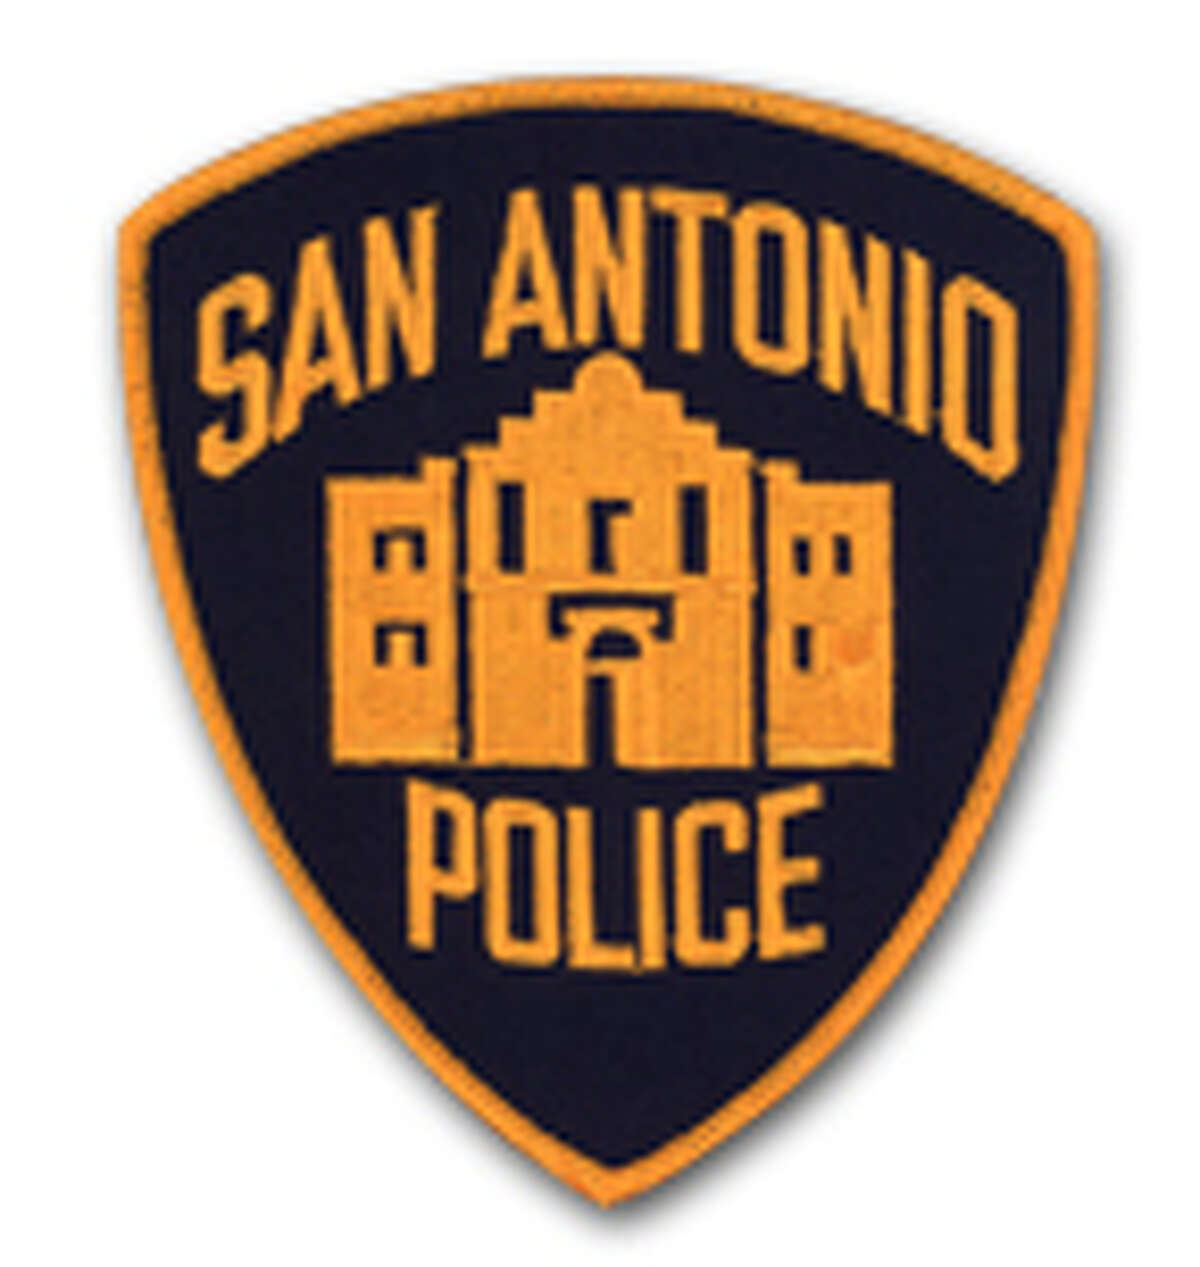 More than 150 employees with the San Antonio Police Department have been quarantined due to COVID-19, the department announced Monday.